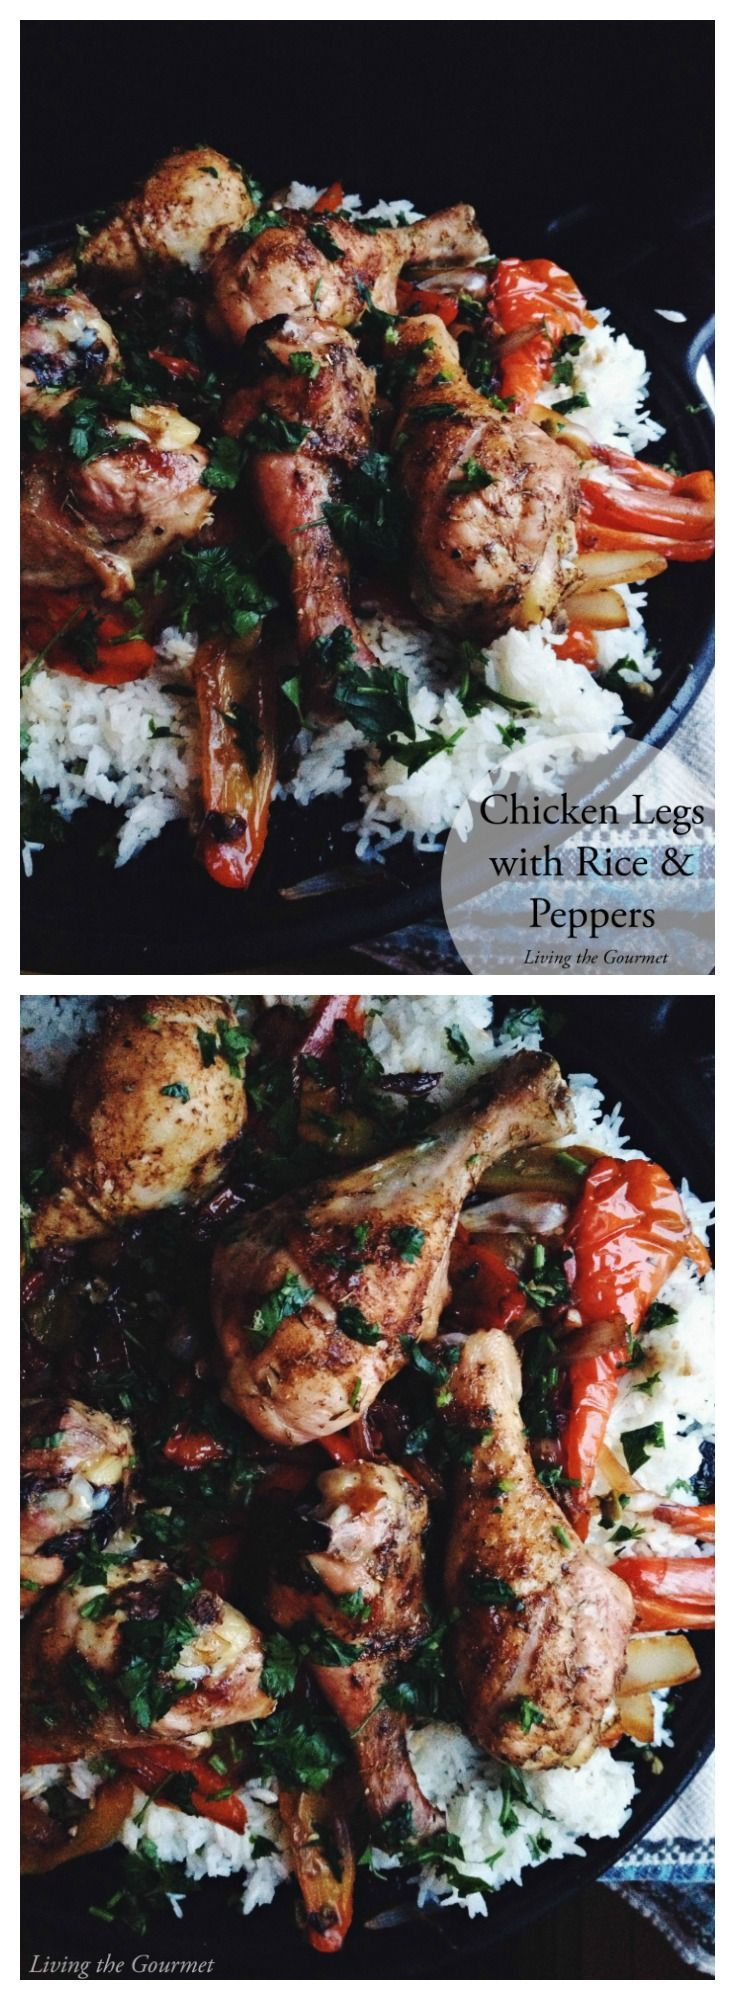 A comforting meal, that is easy to prepare. Perfect for weeknights or weekends. The days are much longer now giving much more time to the chores to be completed and the tasks on the schedule of the day. Though with the longer days there seems to be less time for rest and the lingering time...